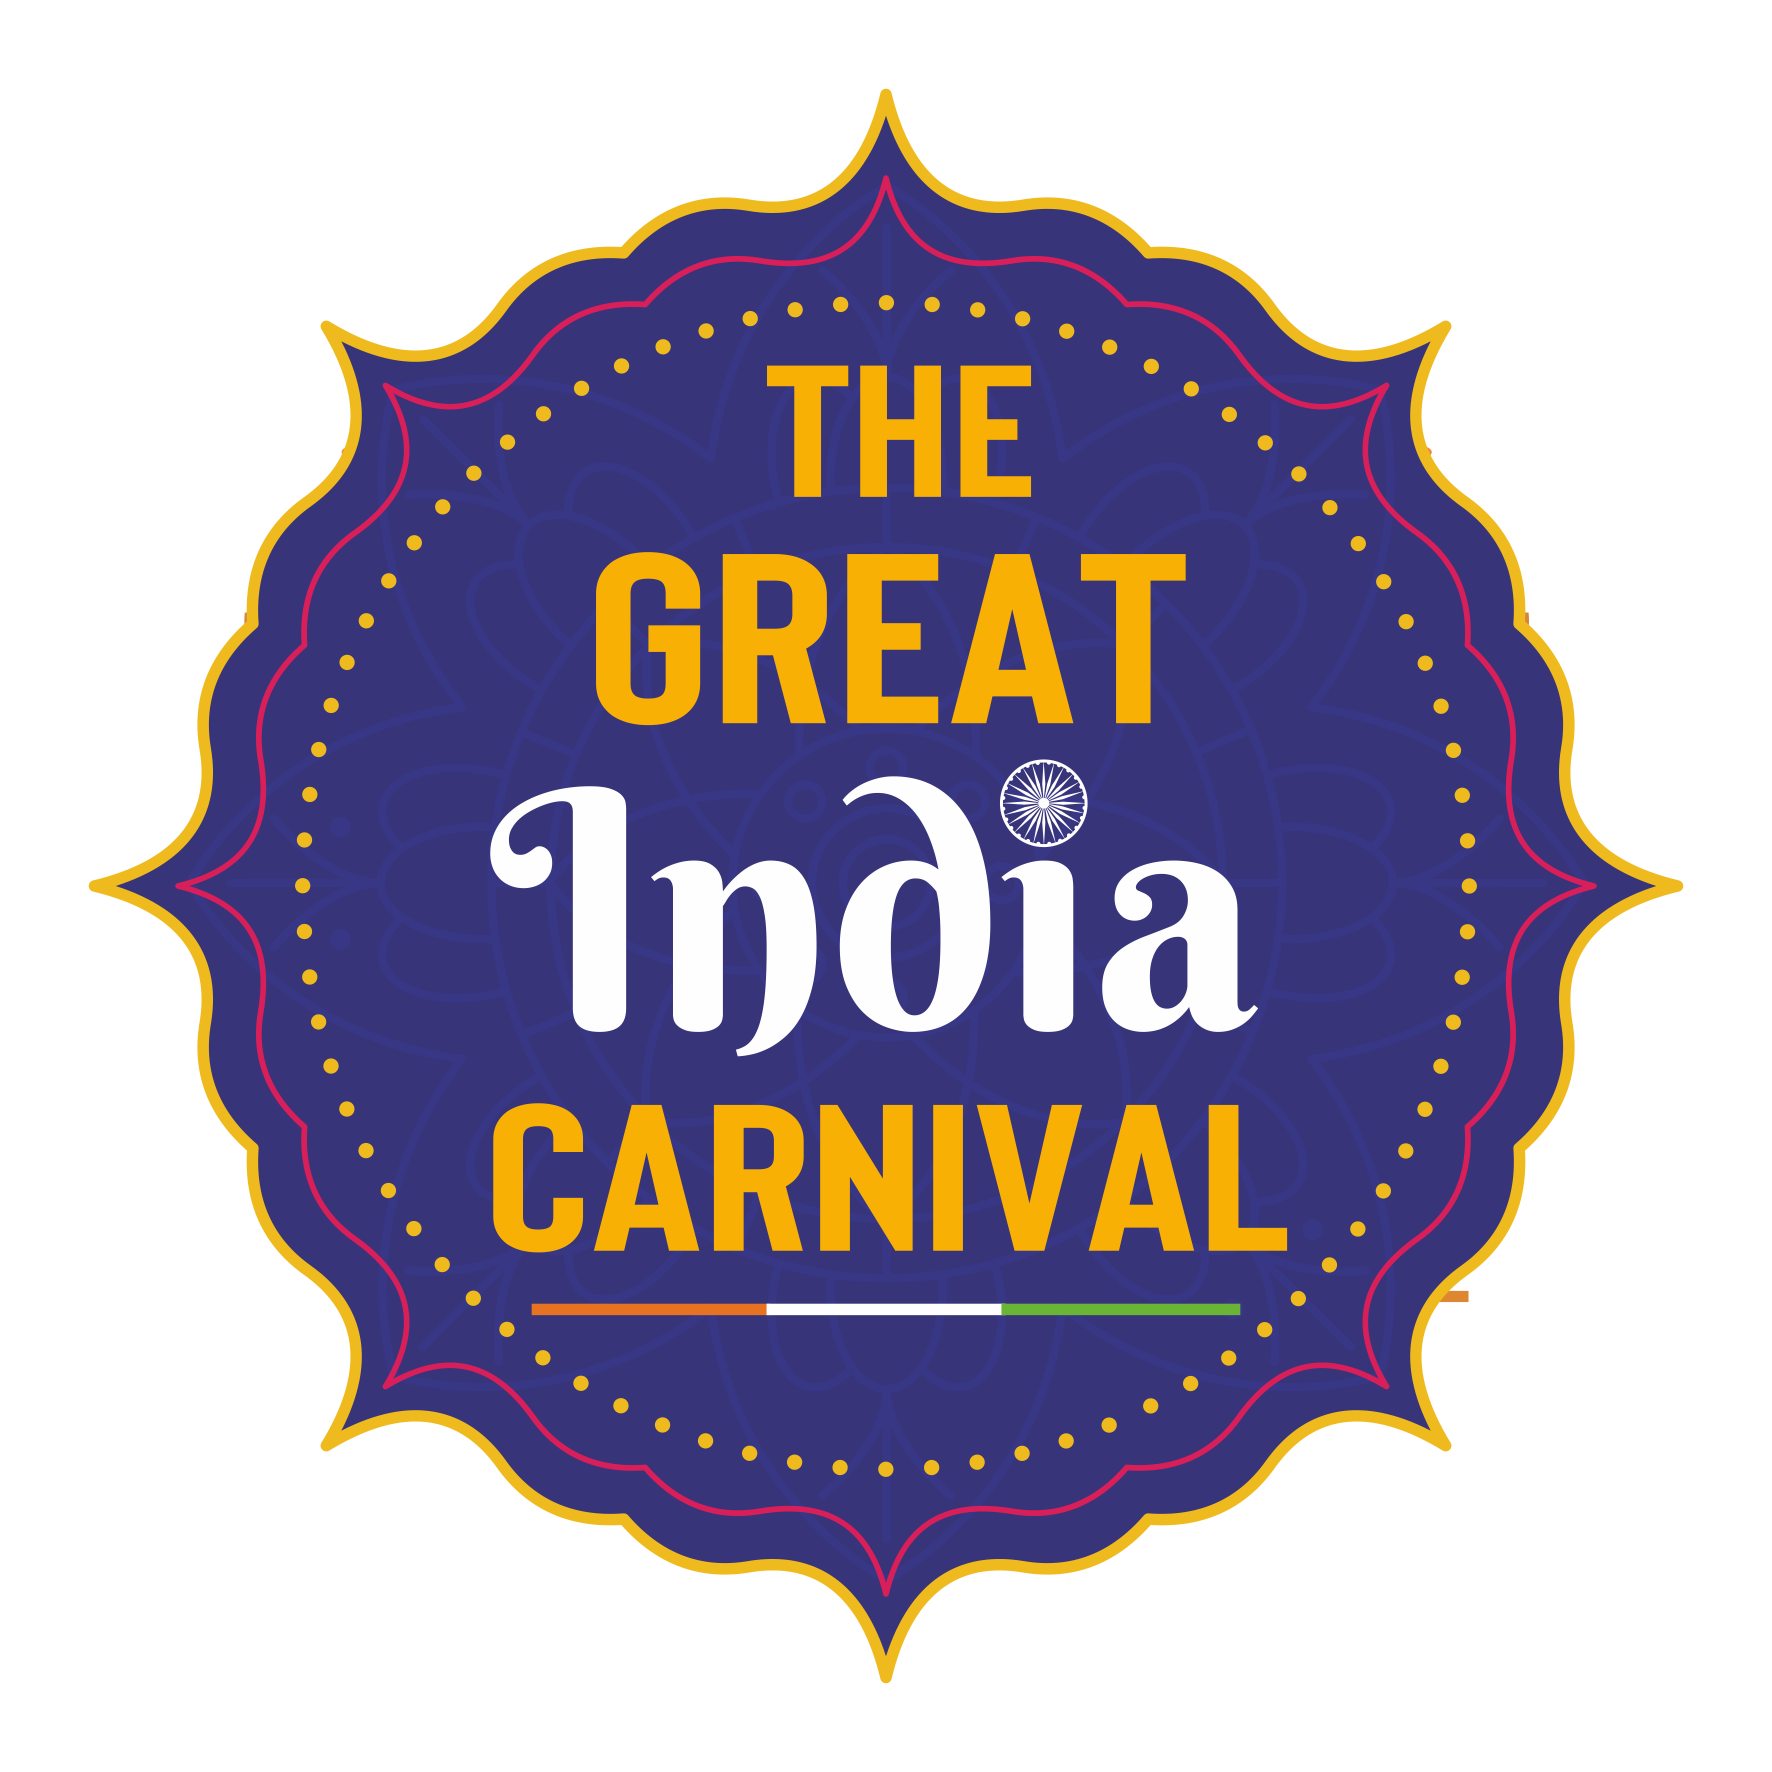 The Great India Carnival